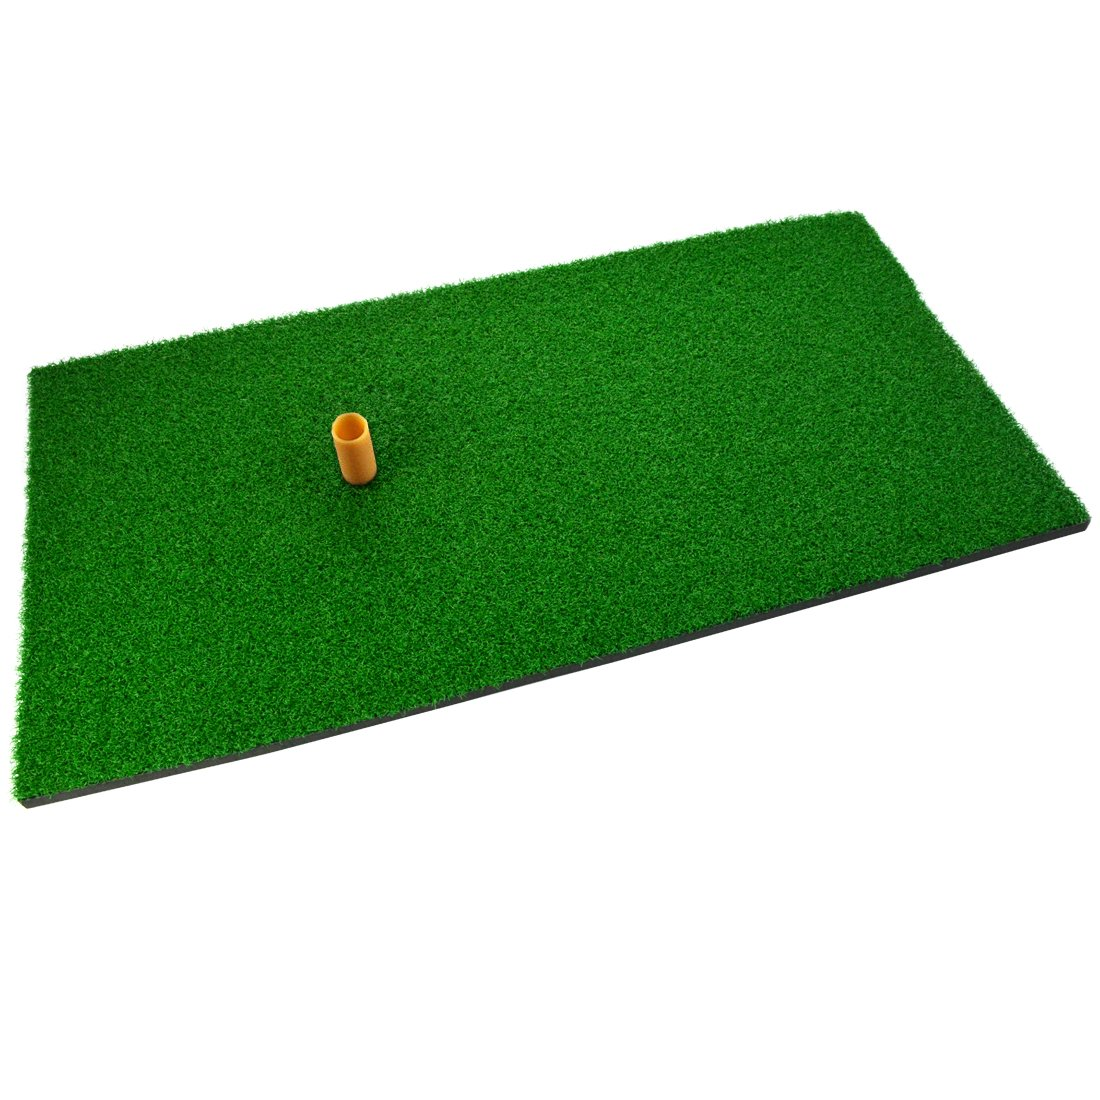 SUMERSHA Golf Mat 12''x24'' Residential Practice Hitting Mat Rubber Tee Holder Realistic Grass Putting Mats Portable Outdoor Sports Golf Training Turf Mat Replacement Indoor Office Equipment by SUMERSHA